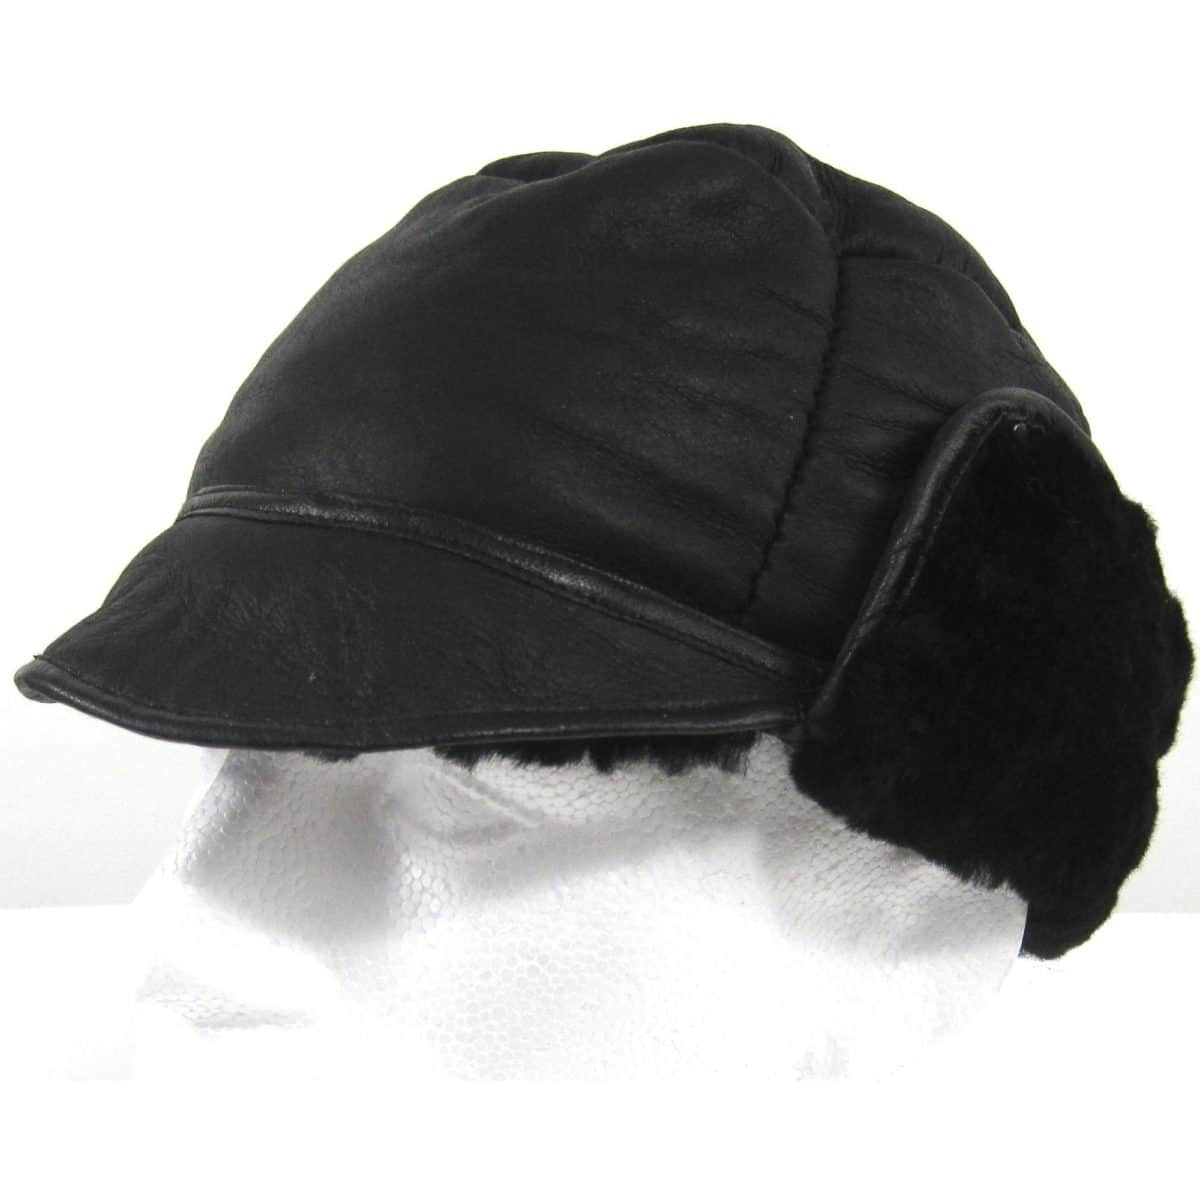 Fenton Soft Leather Trapper Hat With Sheepskin Lining